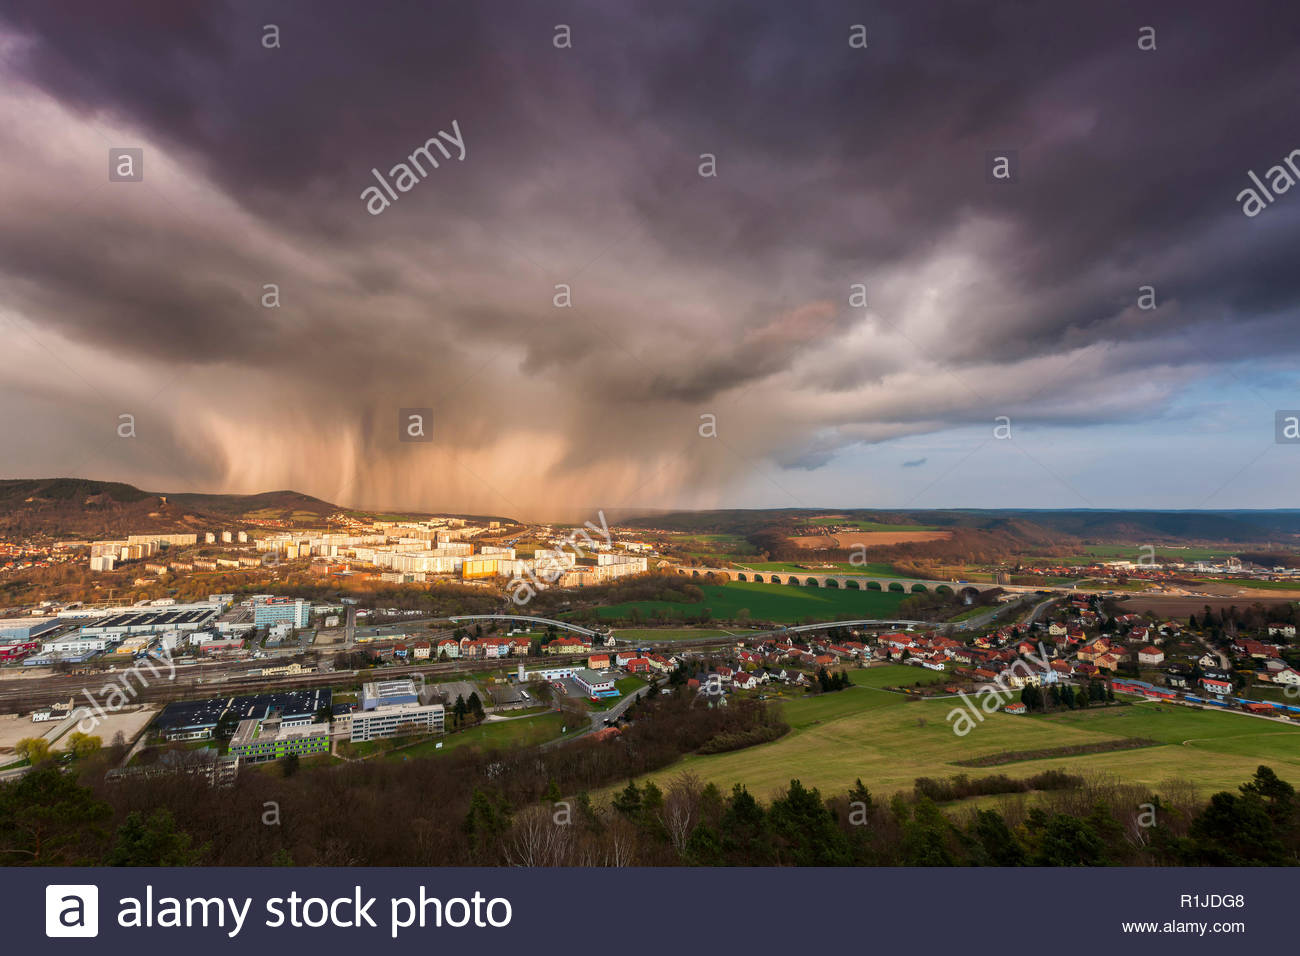 Sleet shower with sunset light on March 25th 2014 in the rear of Neulobeda and Göschwitz, Jena, Thuringia, Germany - Stock Image